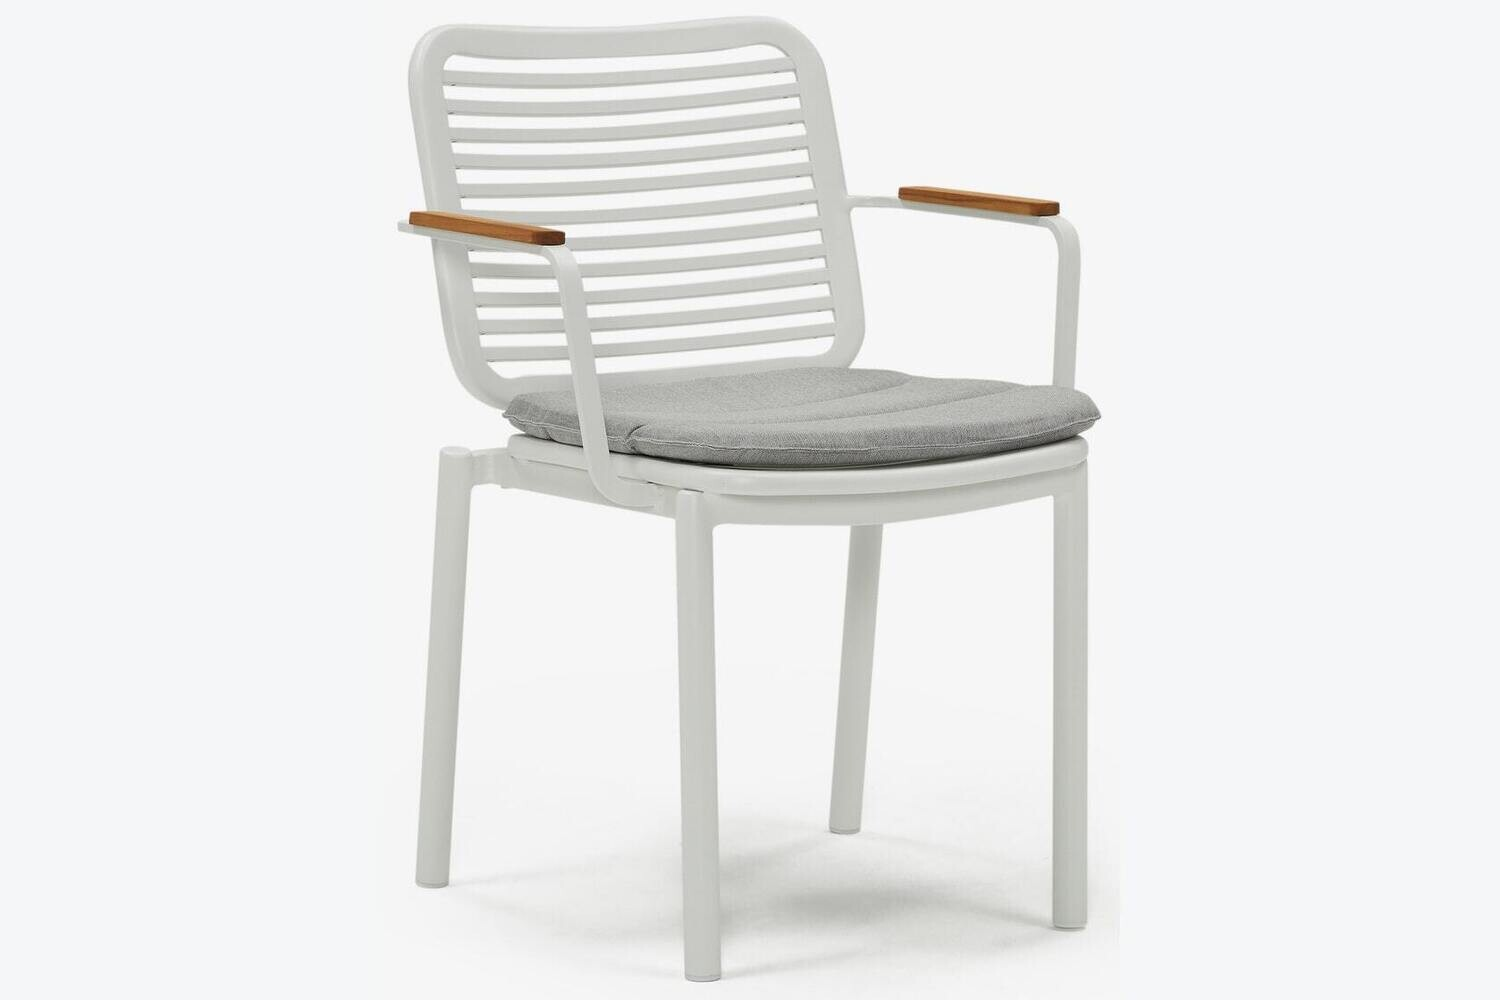 JB Kinsey Outdoor Dining Chair (Set of 2) 221